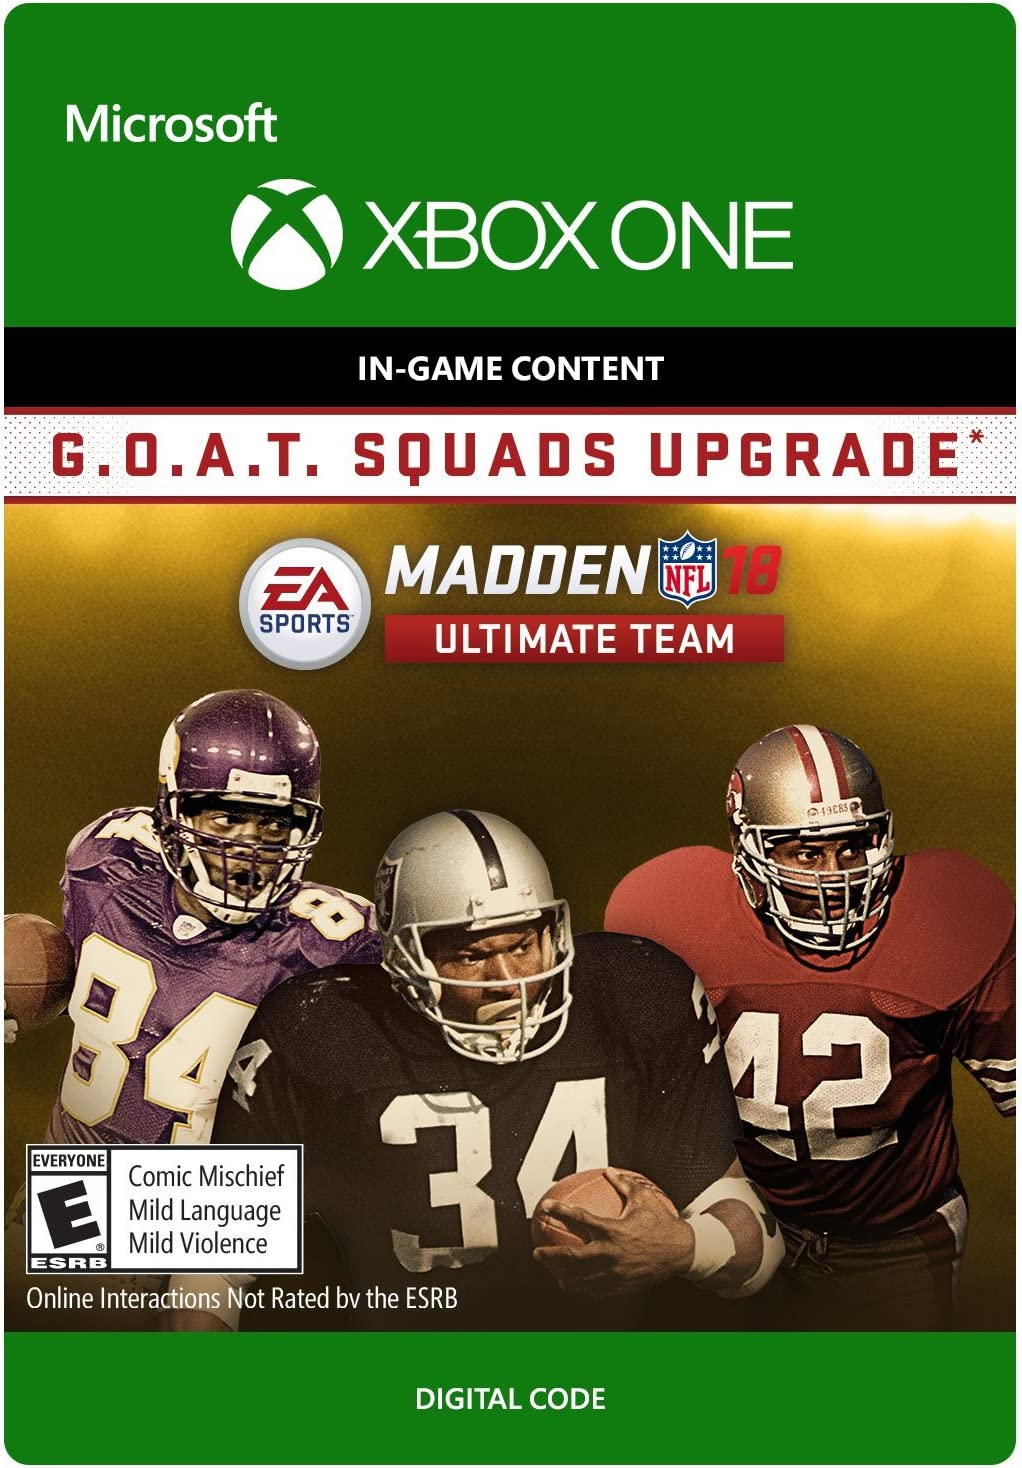 c109e8d4f Madden NFL 18 - G.O.A.T. Squads Upgrade - Xbox One  Digital Code . by  Electronic Arts